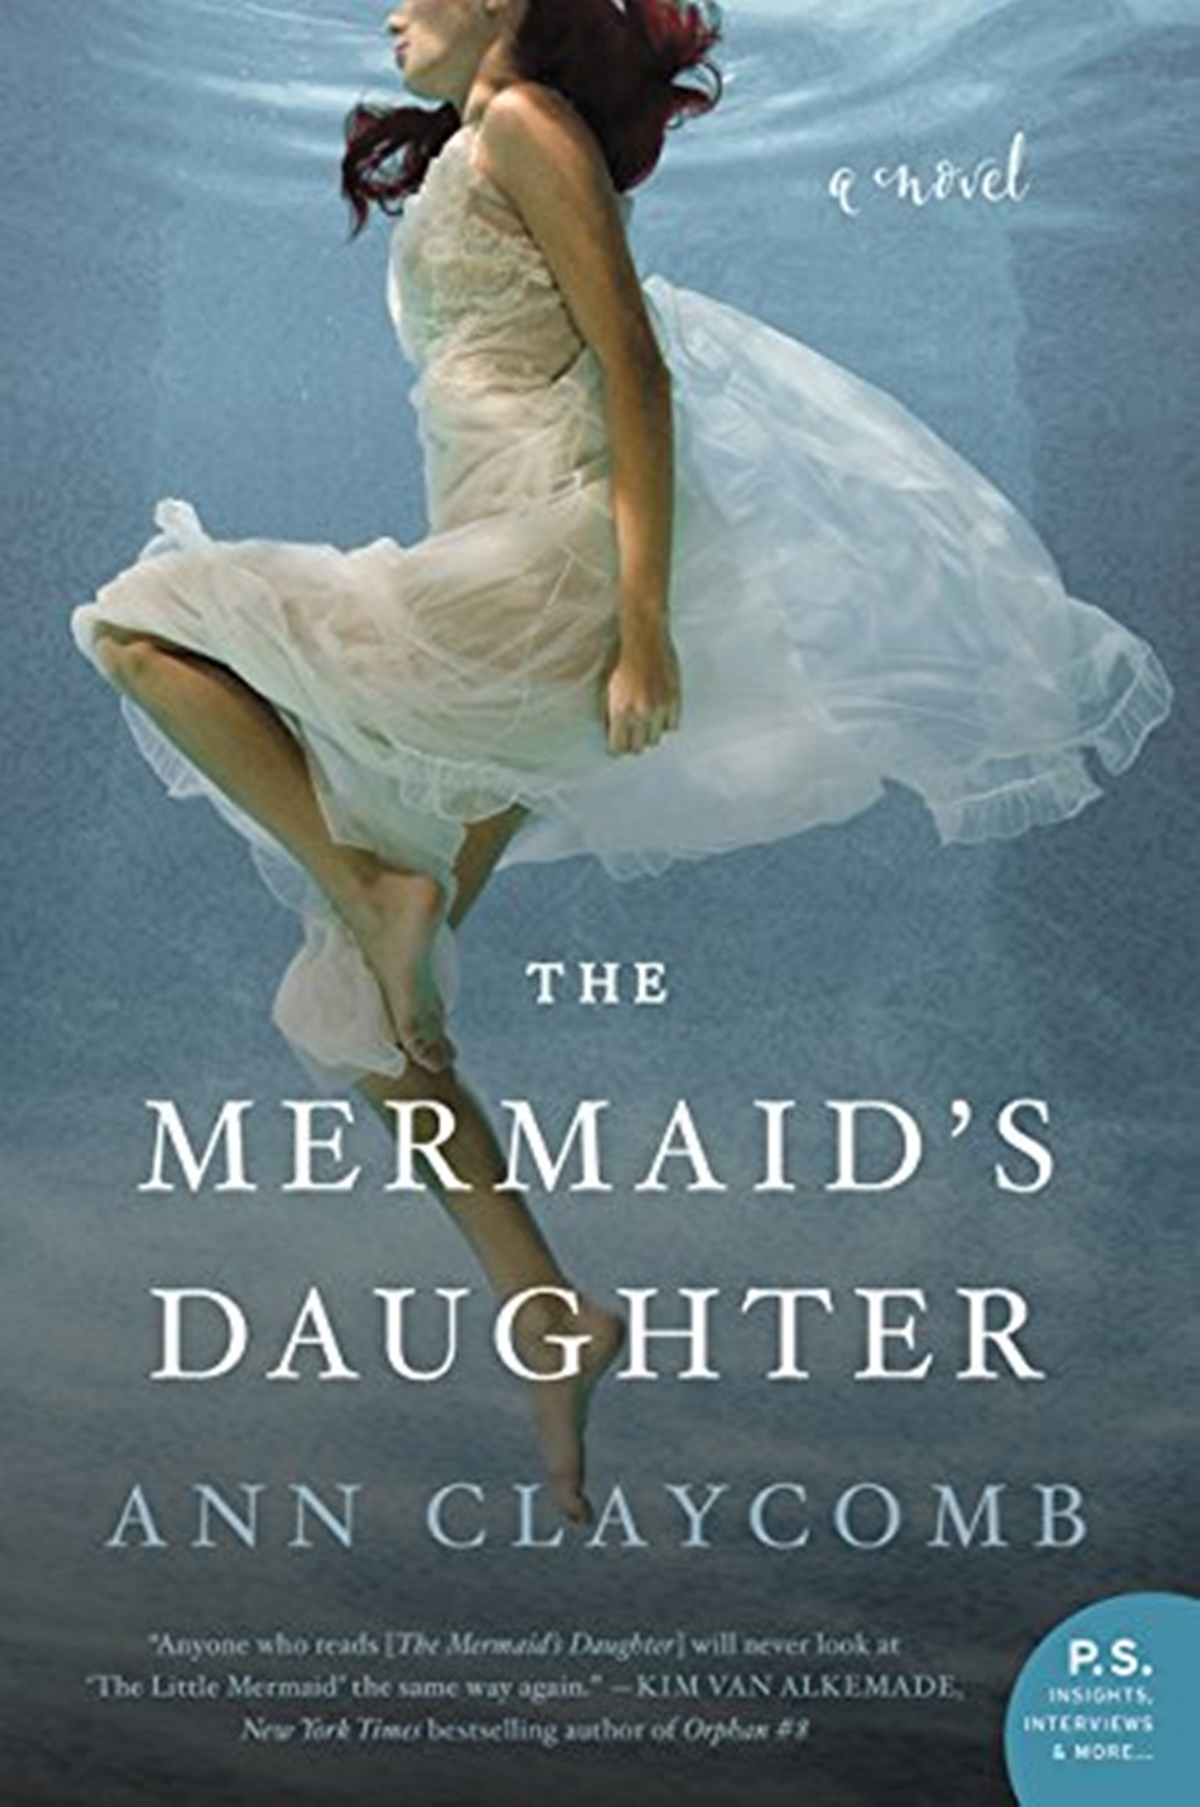 Romance Books Like Siren, cover of The Mermaid's Daughter by Ann Claycomb, books